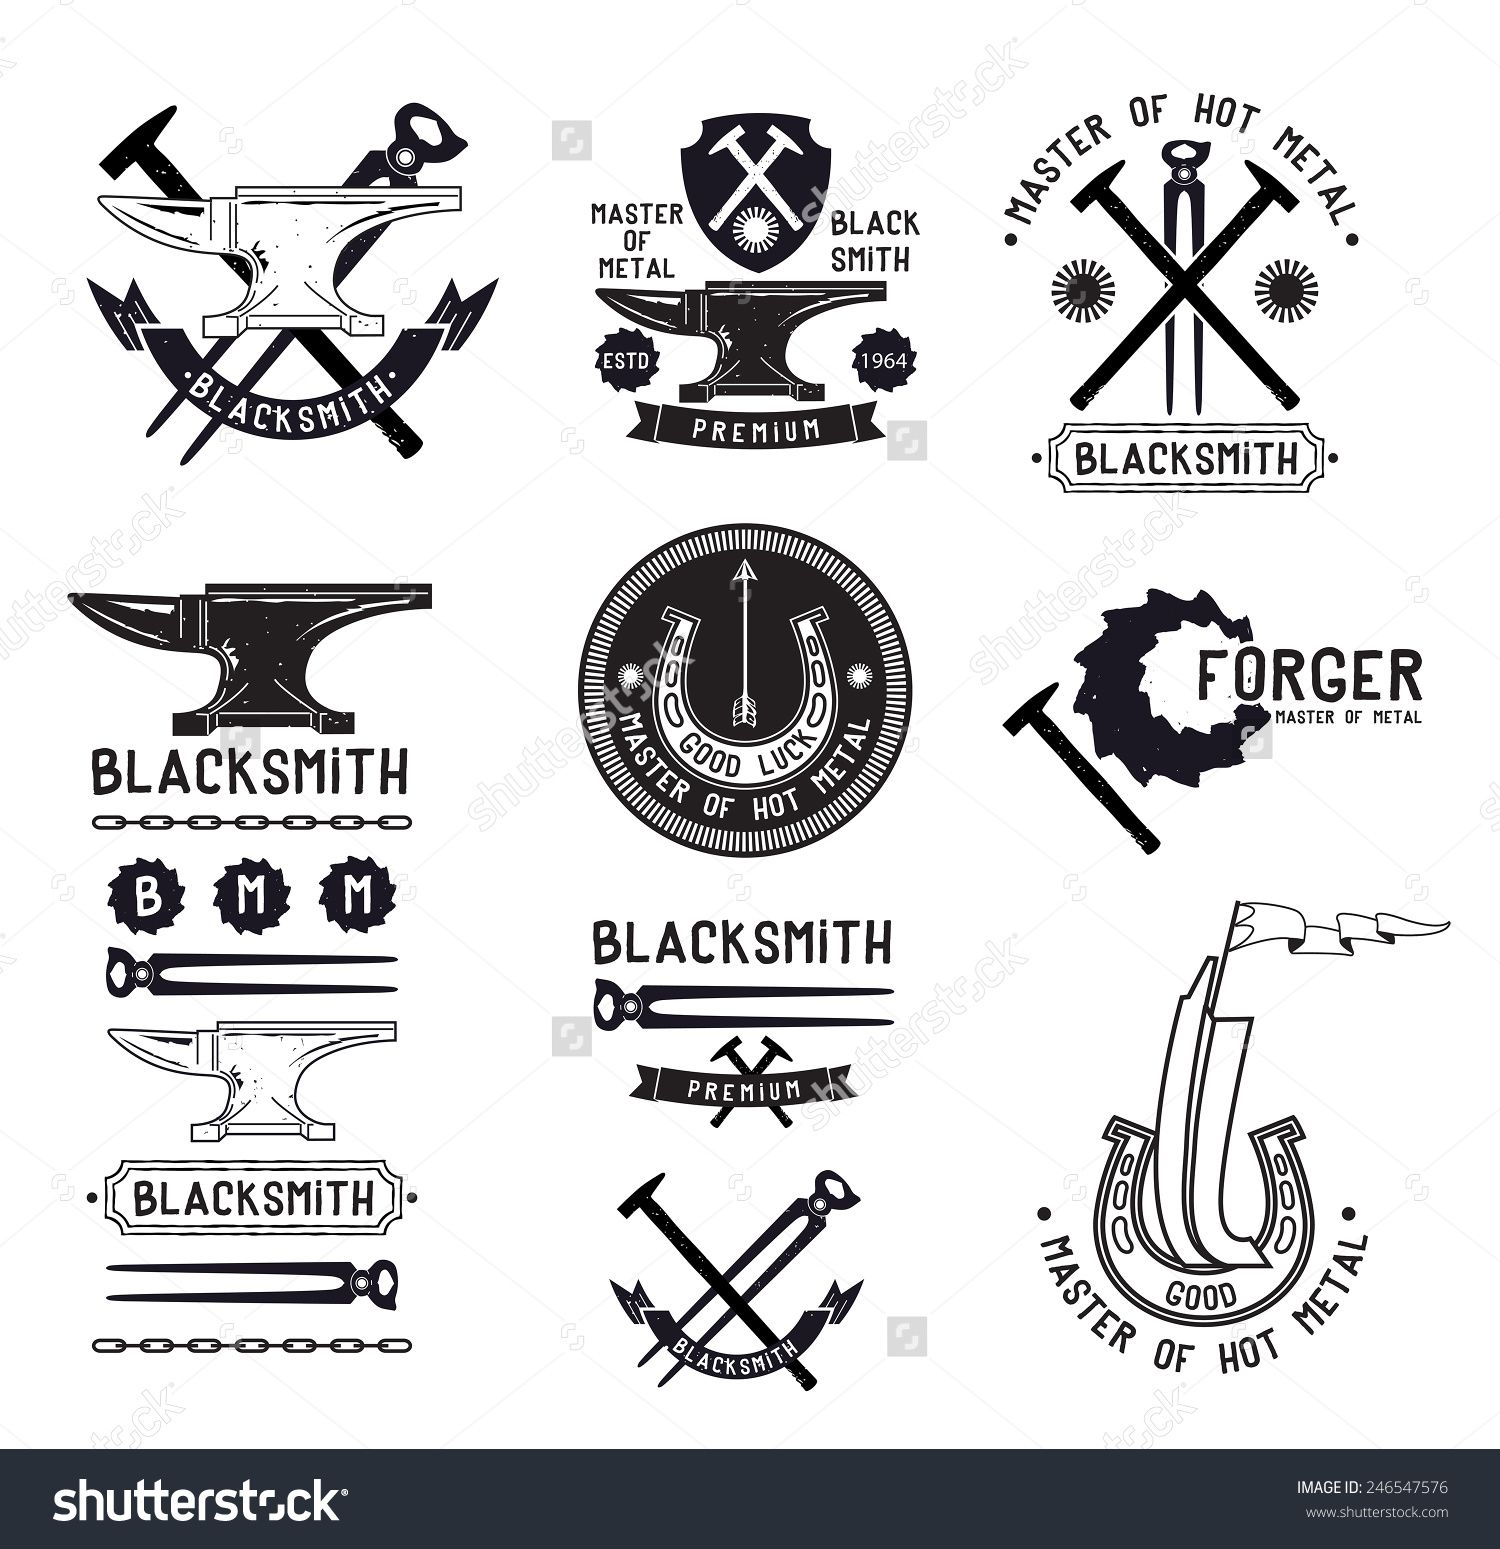 Anvil clipart iron works. Image result for heraldry